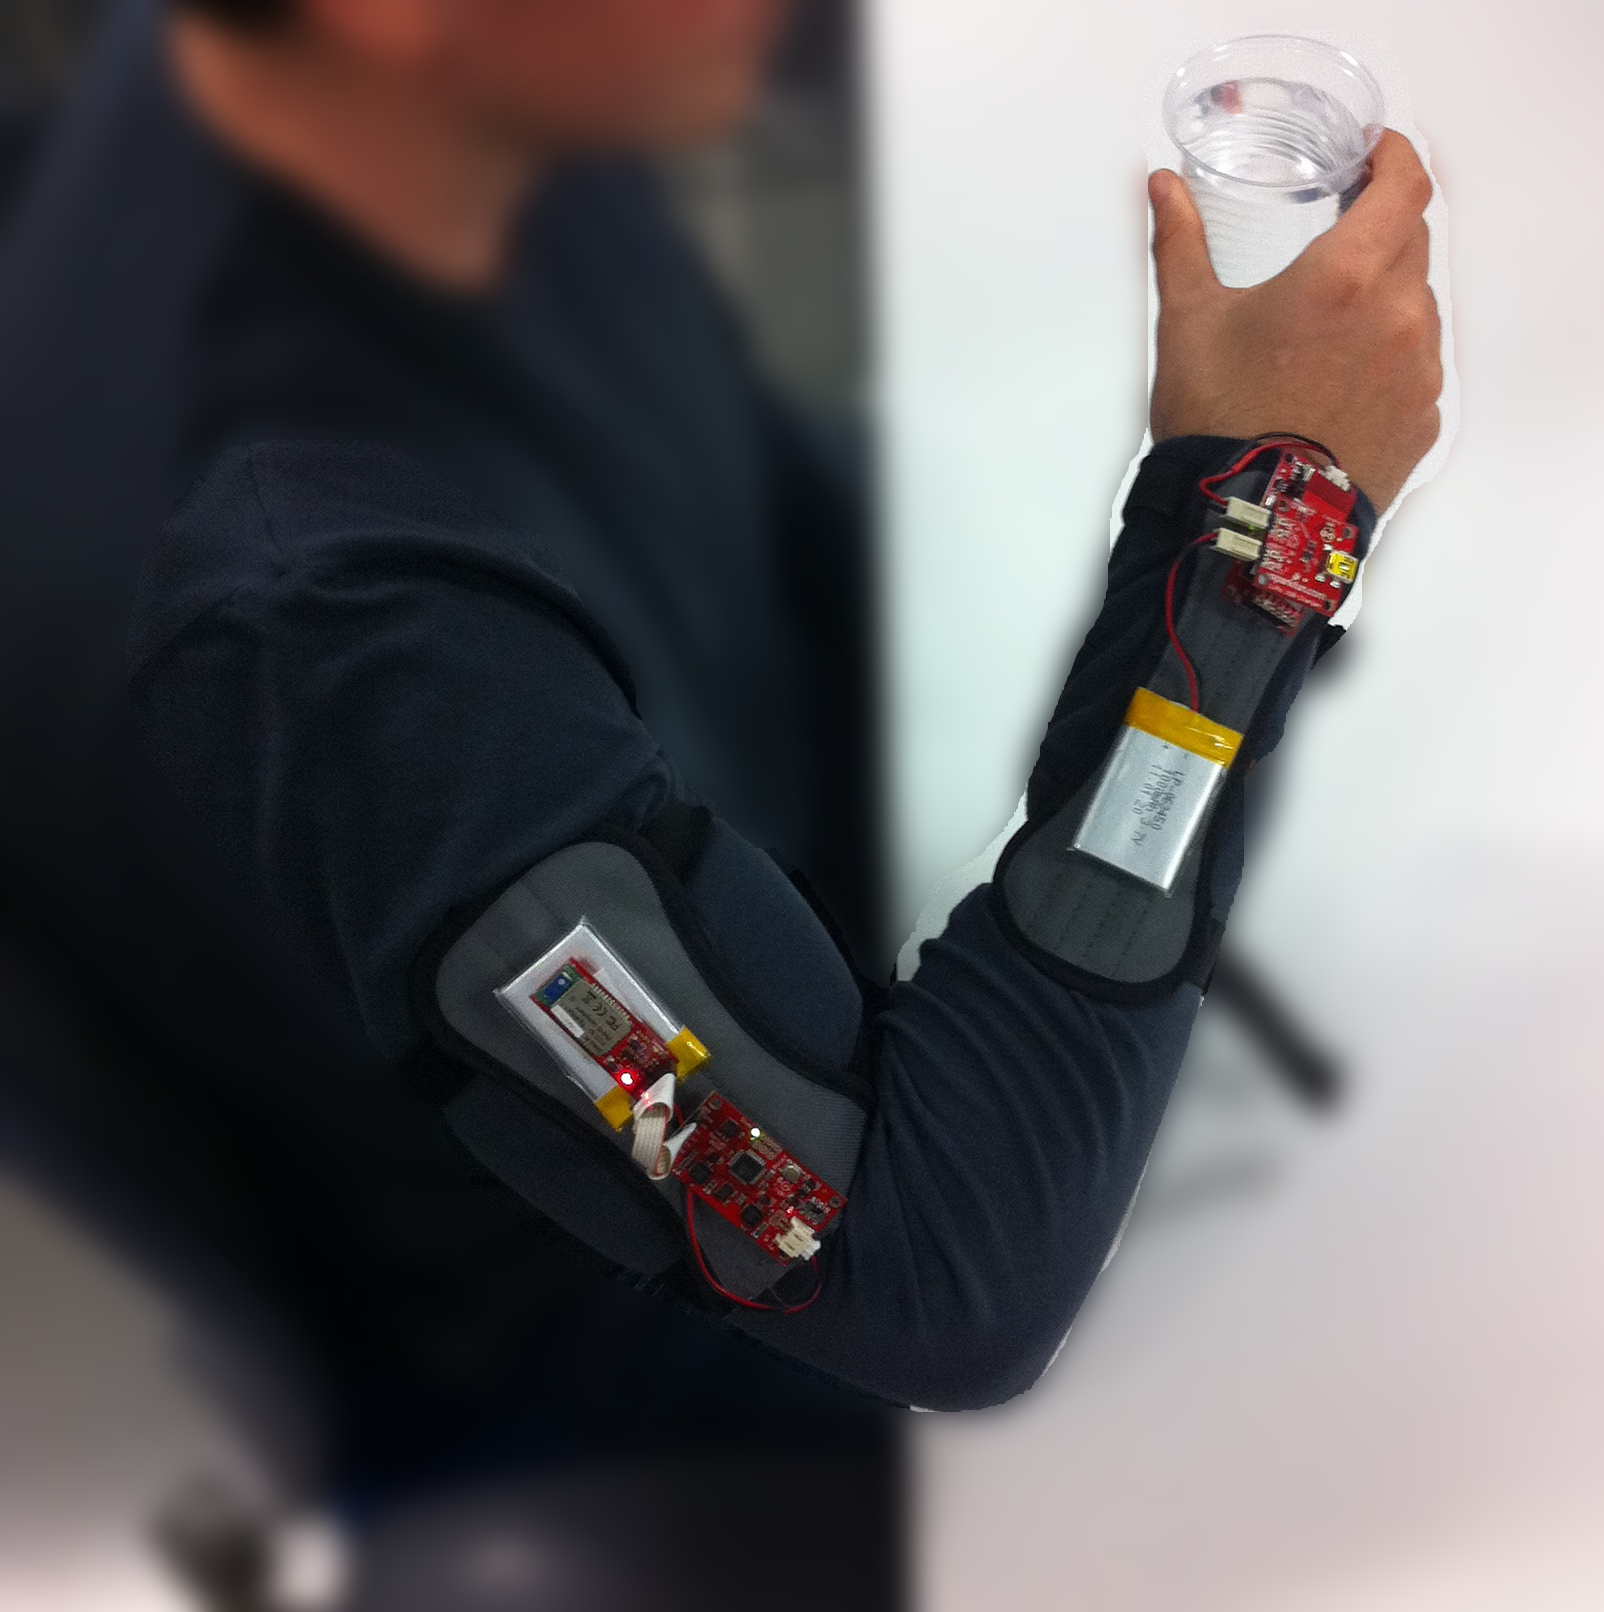 Wearable systems